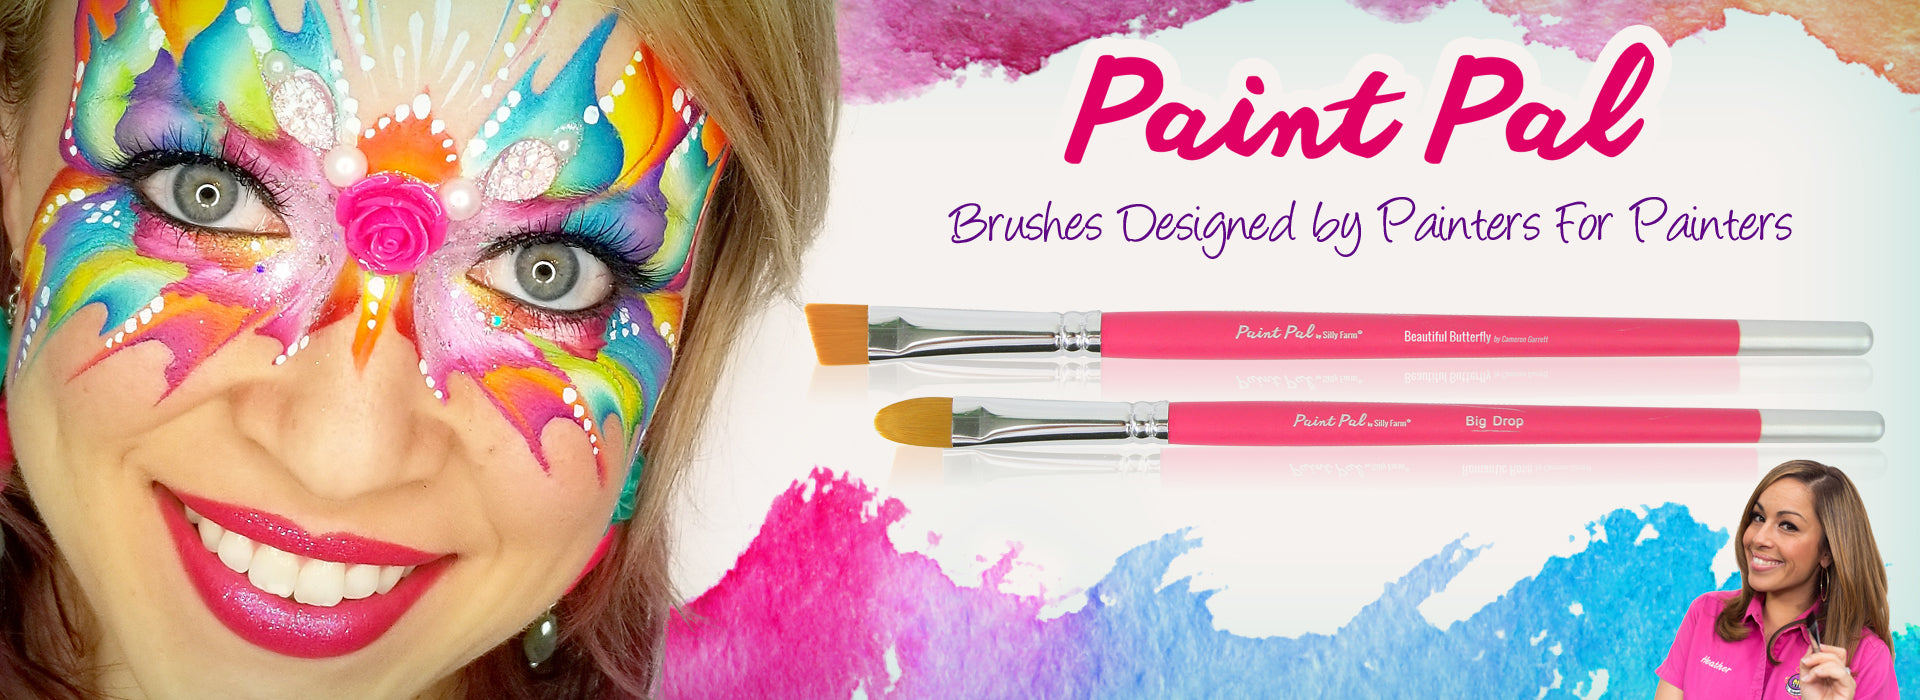 Paint Pal Brushes and Sponges by Silly Farm